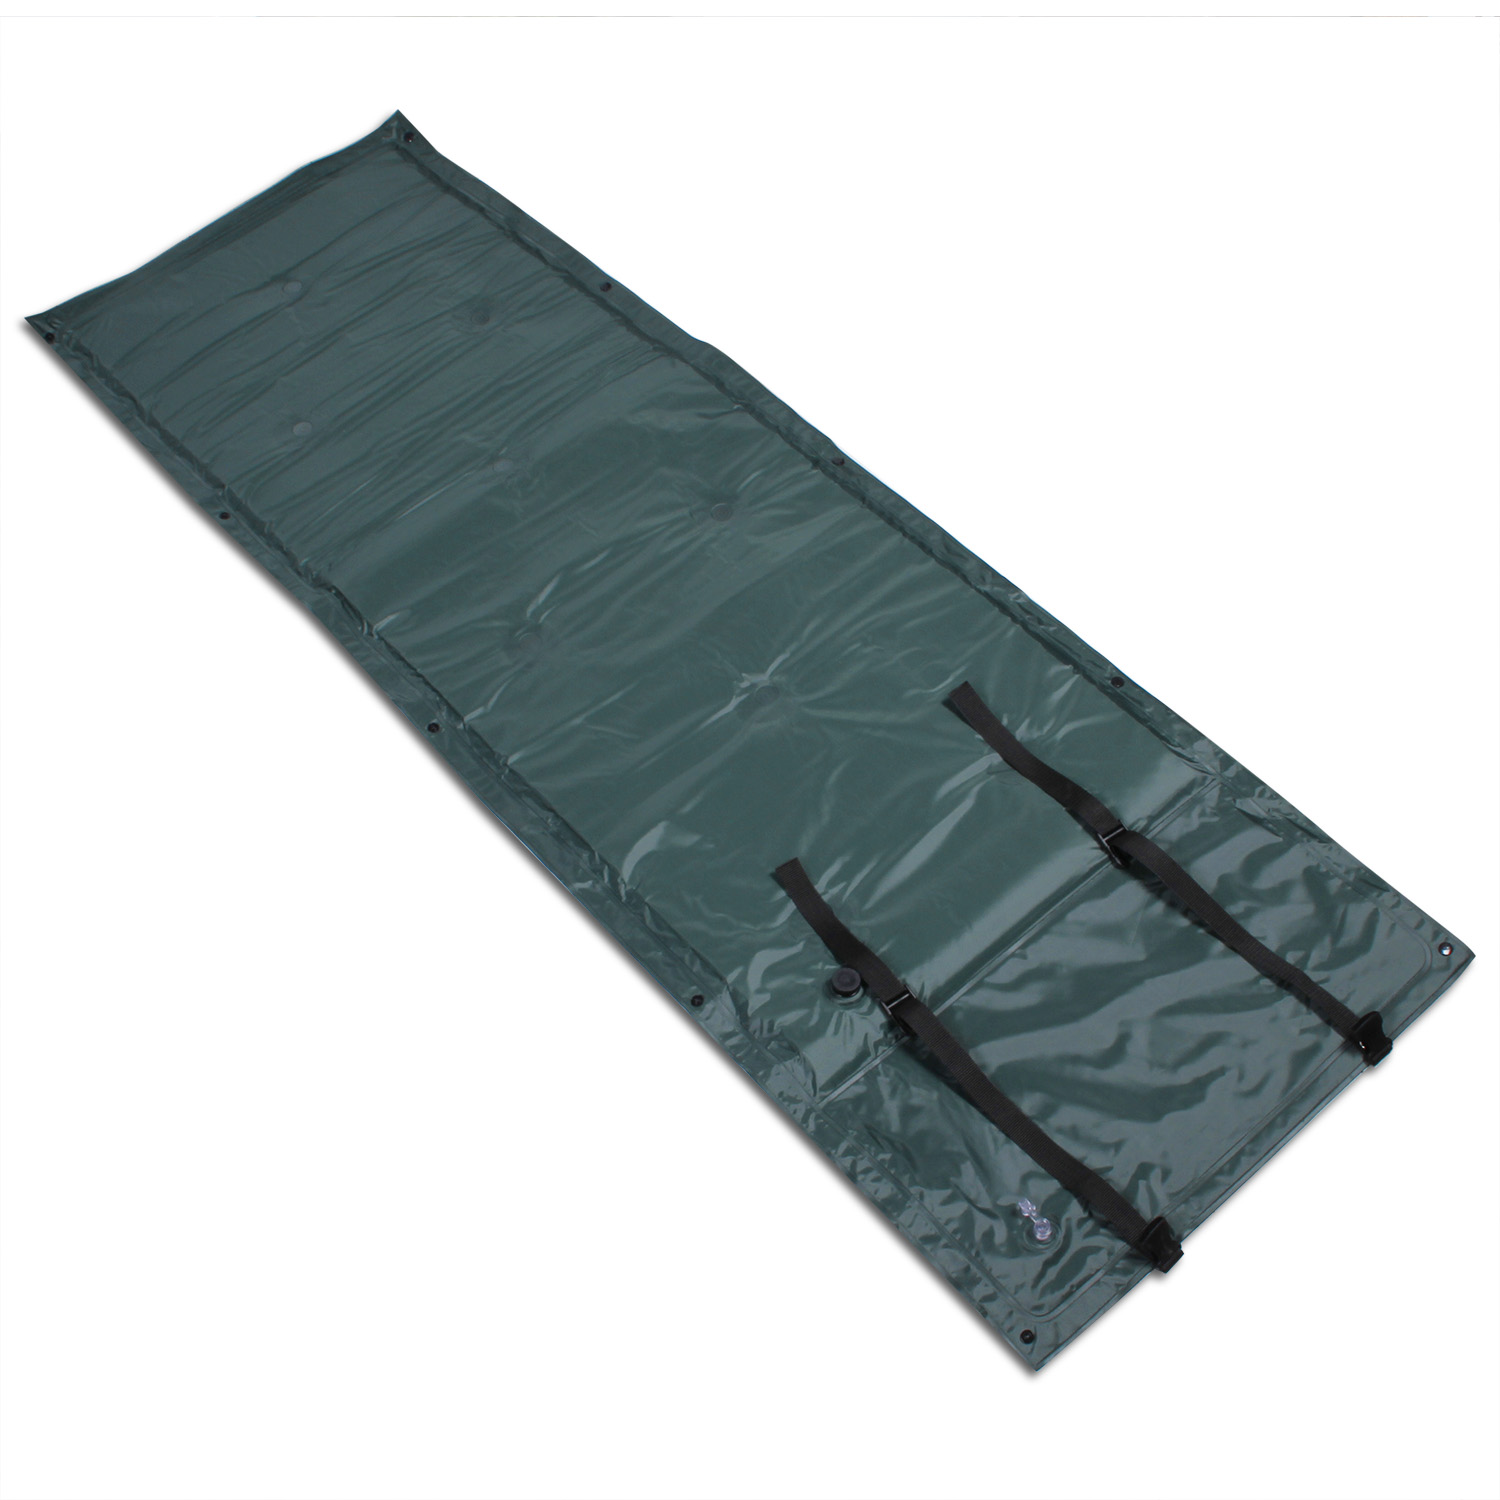 CBD PVC Waterproof Light Weight Self-Inflating for Camping Inflatable Backpacking Sleeping Pad Green 1 PCS